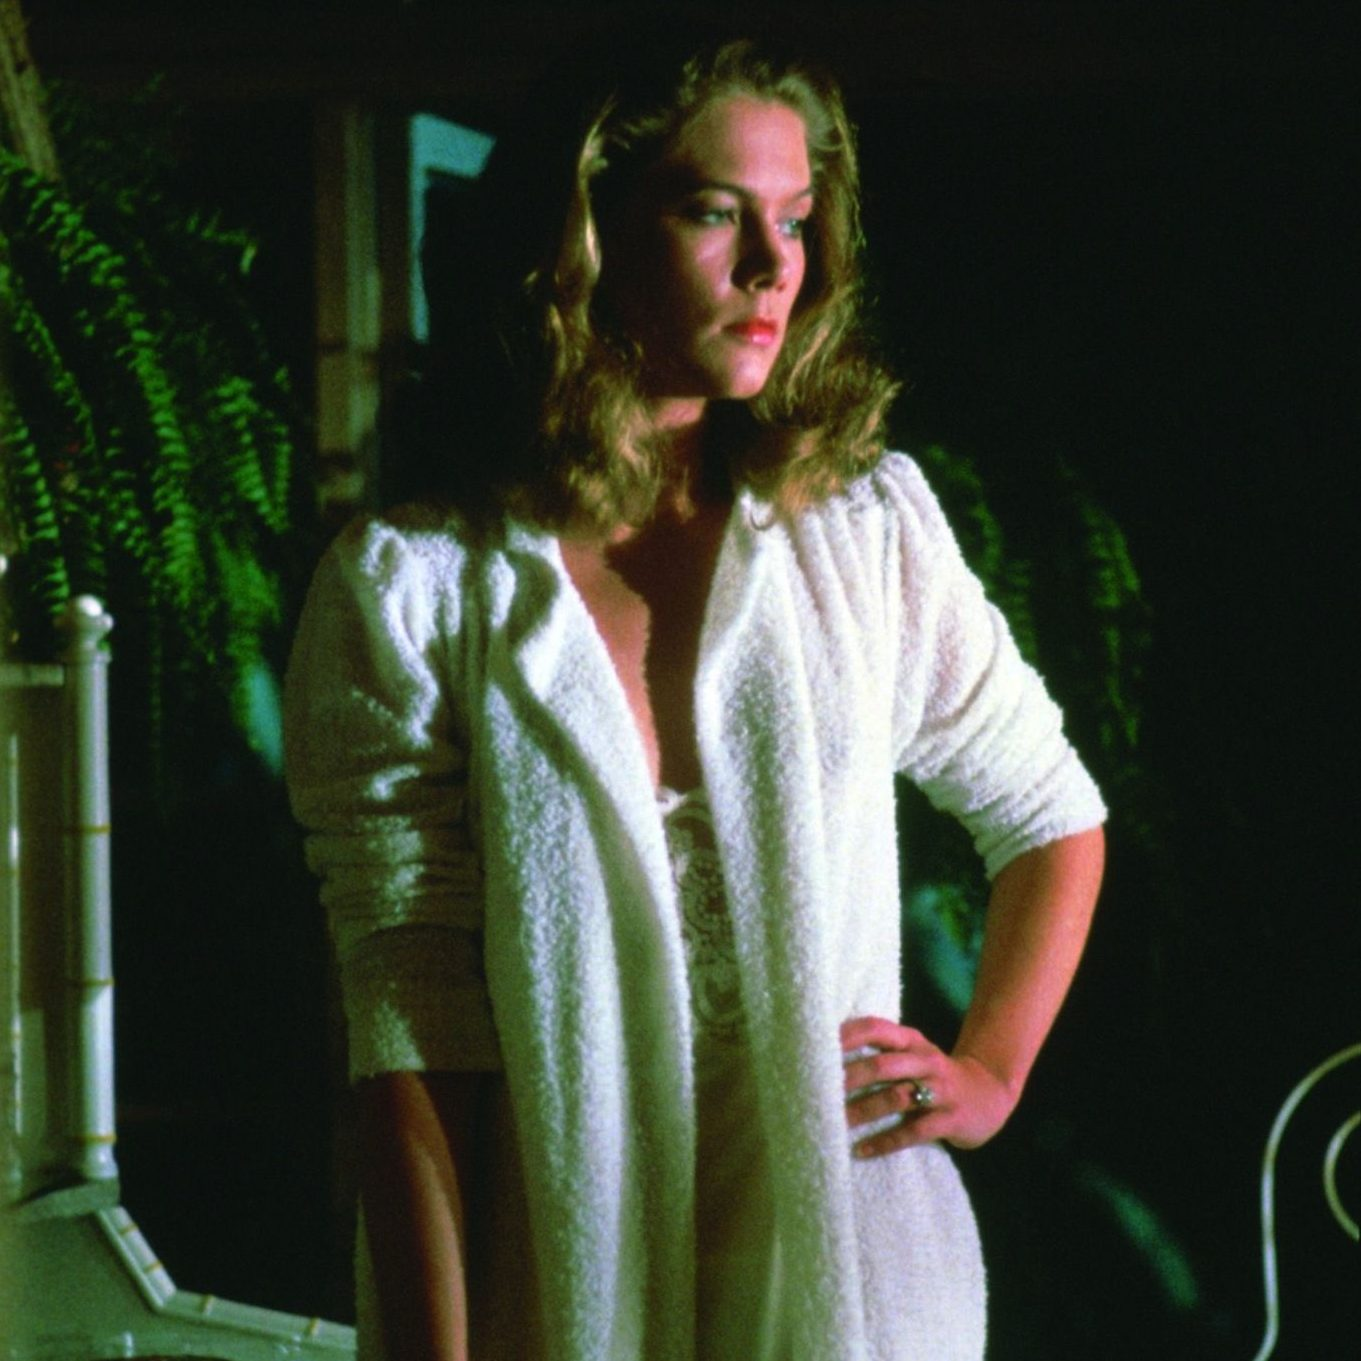 40cfbd28639611ce36b6428d914cad3d e1602071686993 20 Things You Probably Didn't Know About Kathleen Turner